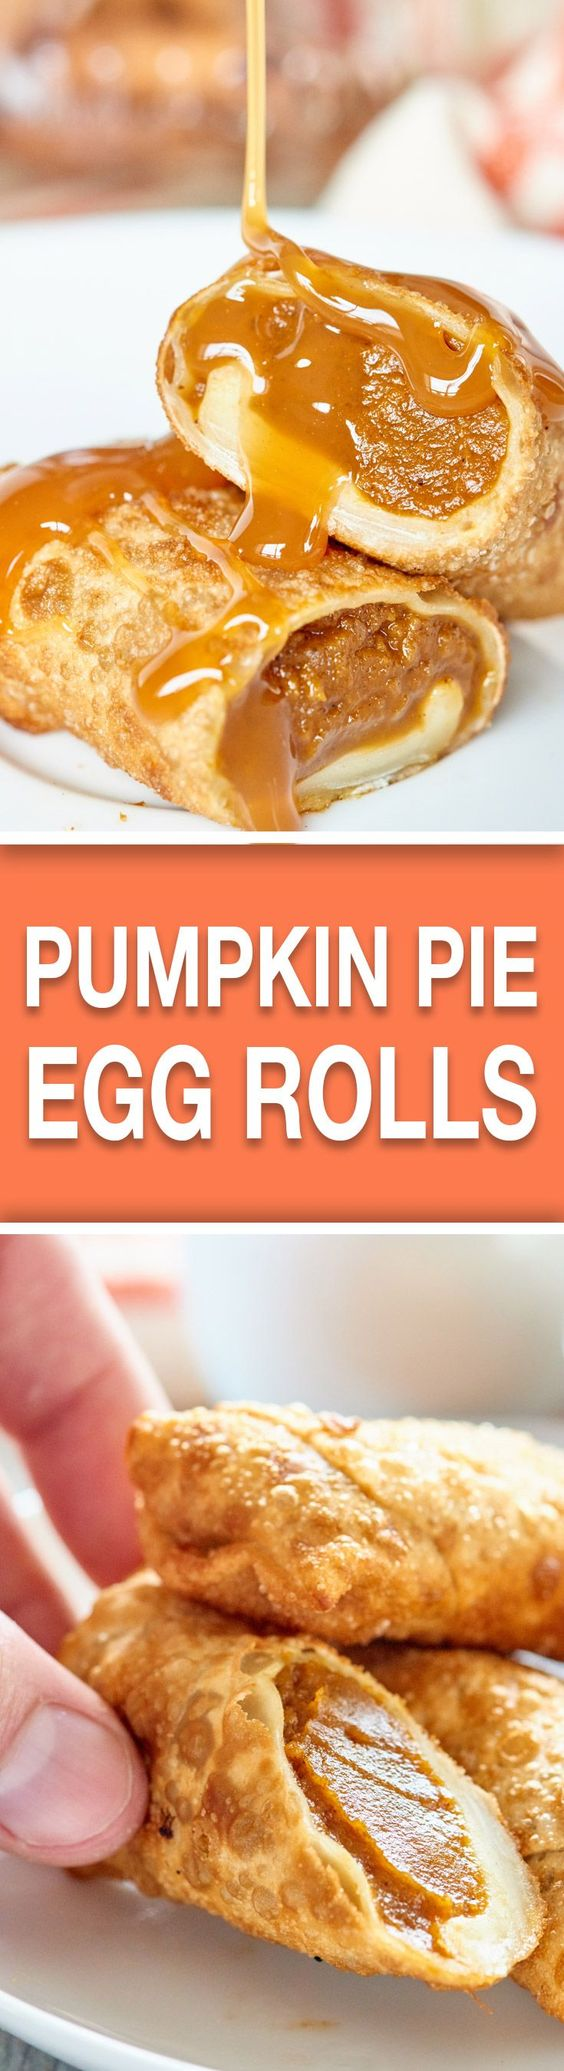 These pumpkin pie egg rolls are a fried fun twist on a classic